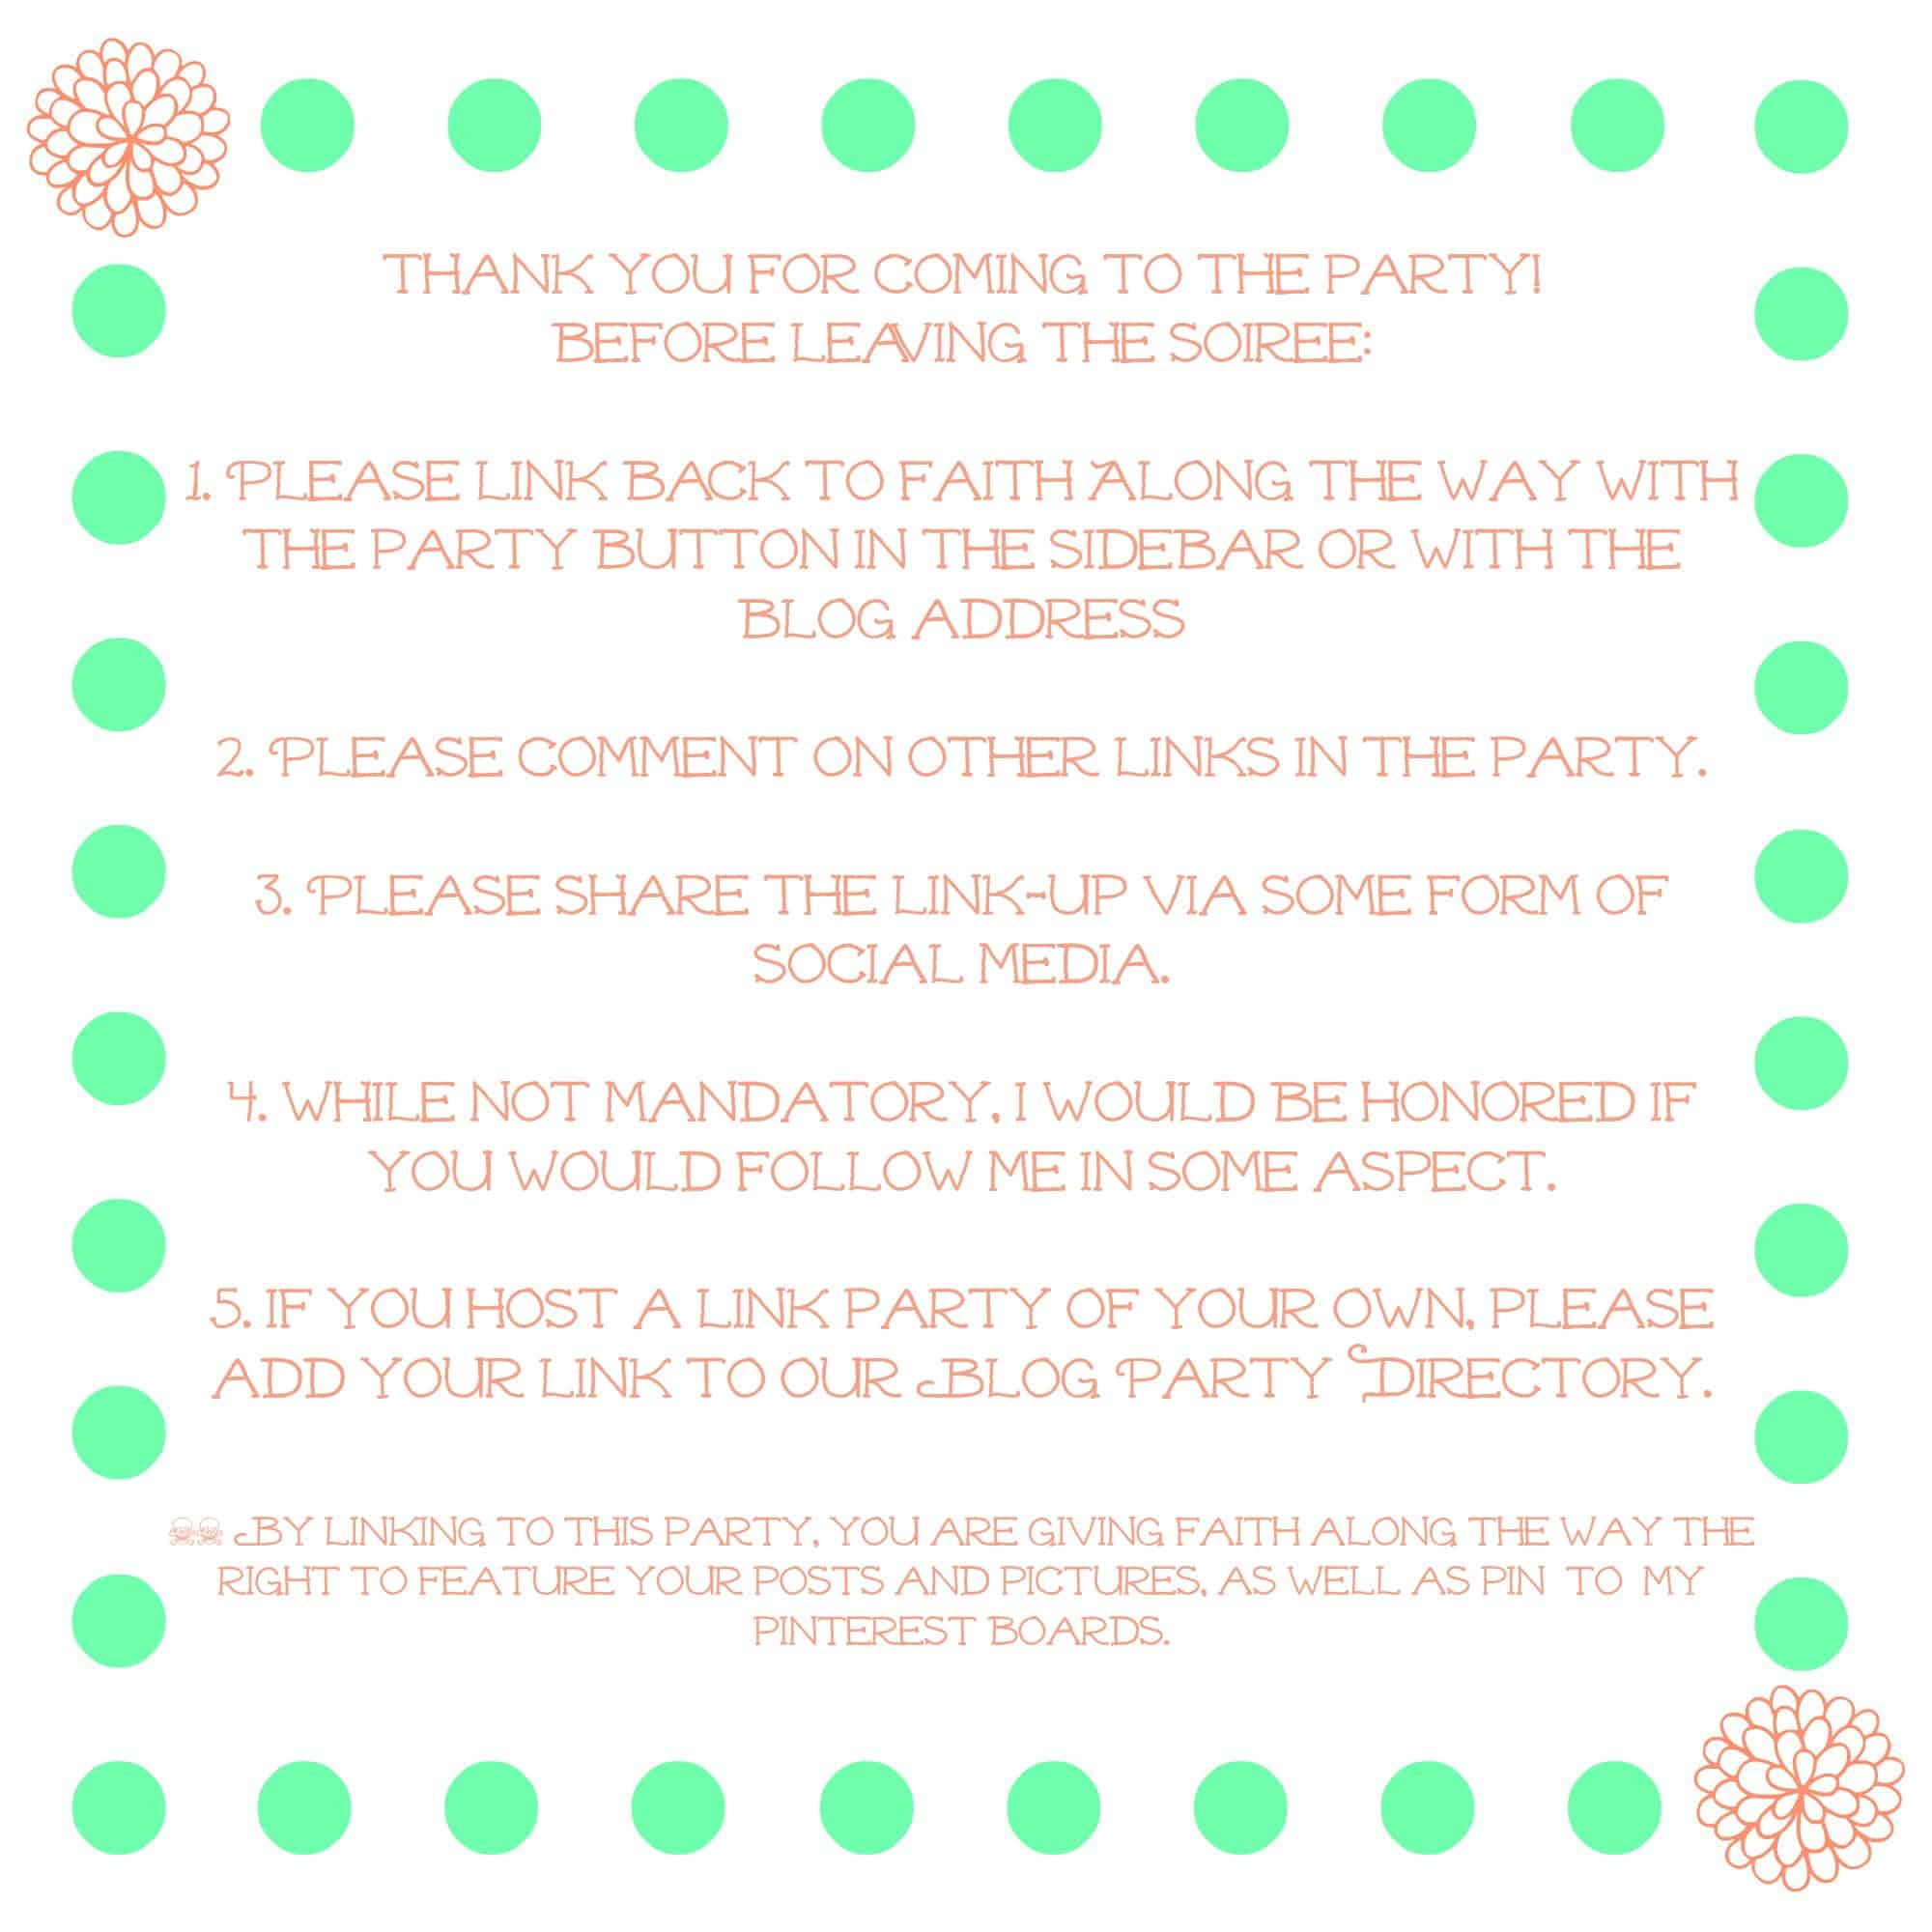 blogpartyrules